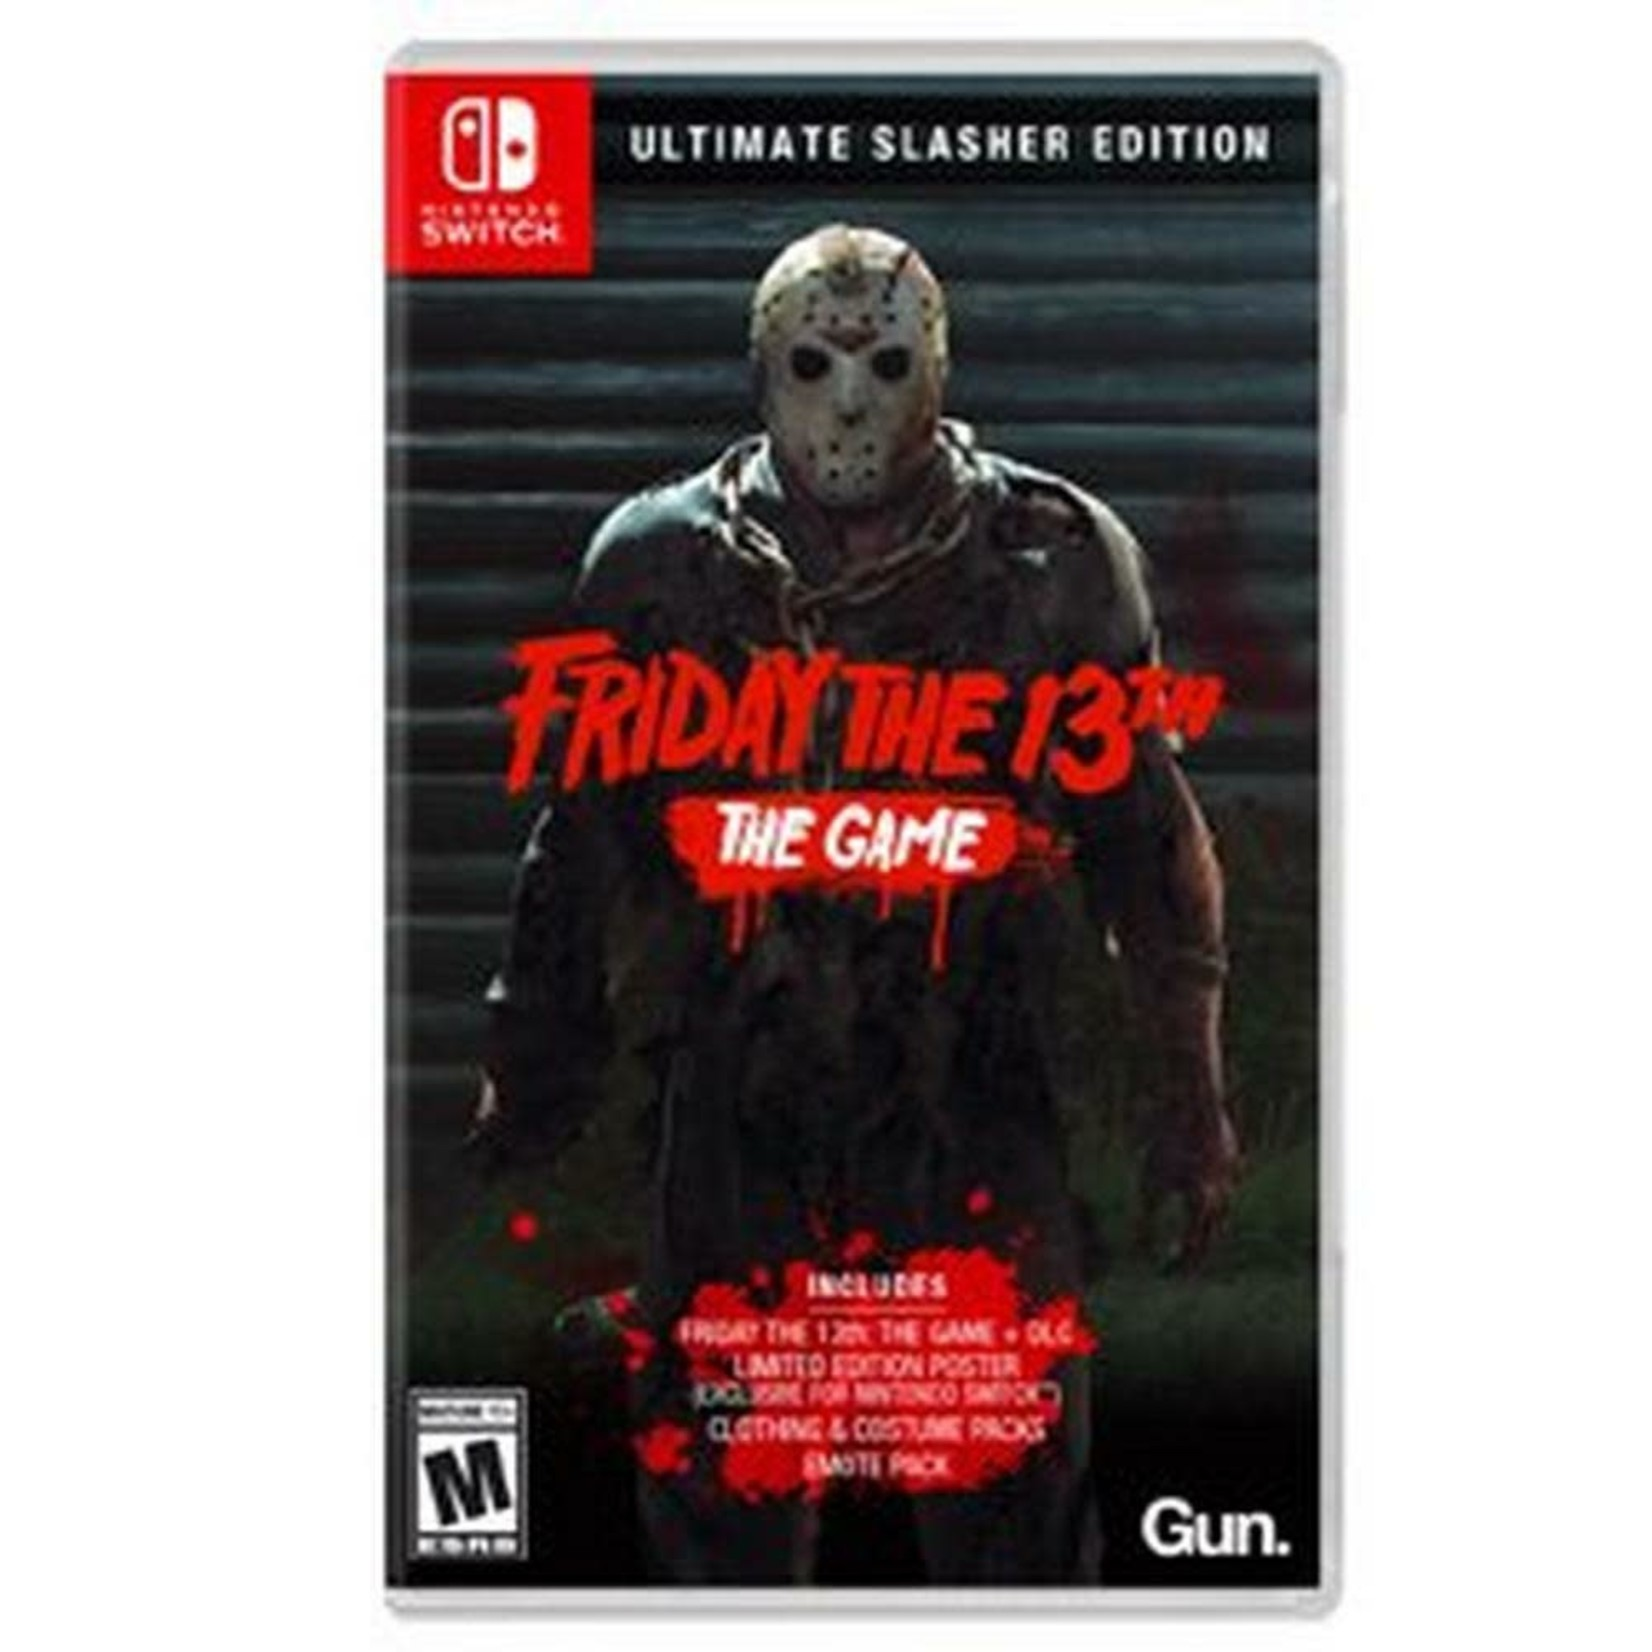 SWITCHU-Friday the 13th: The Game Ultimate Slasher Edition